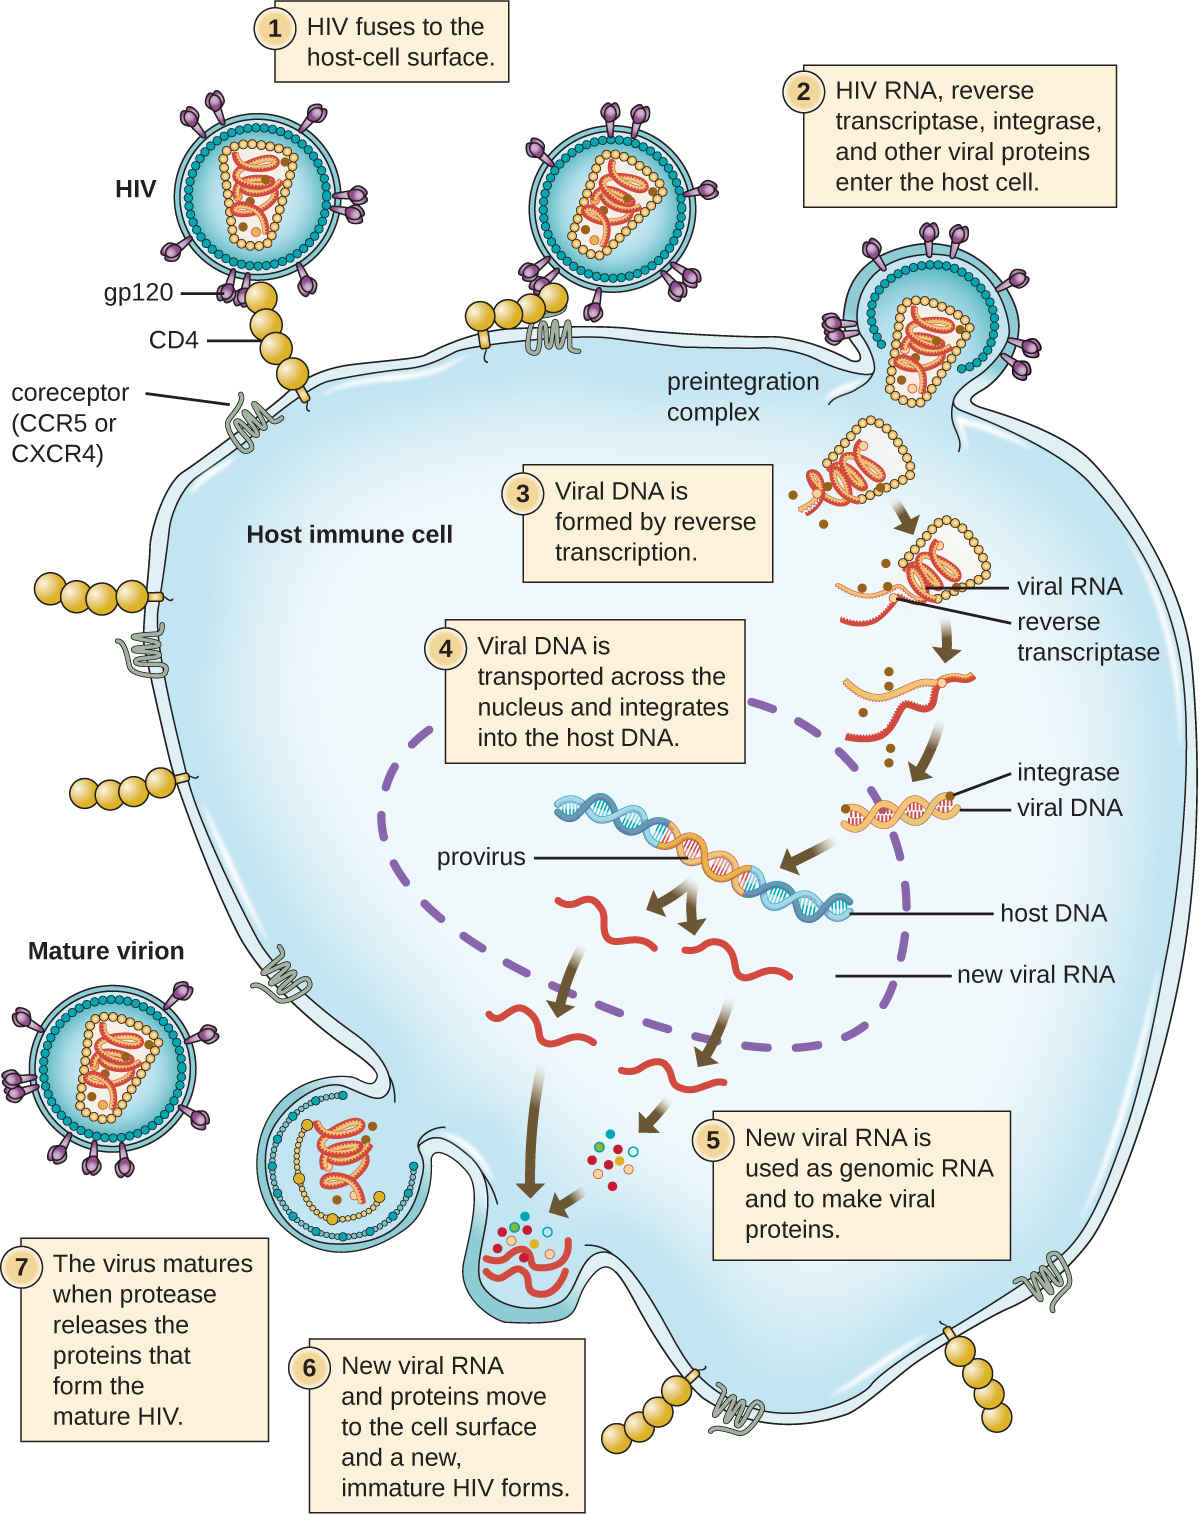 The HIV viral cycle. Step 1: the HIV fuses to the host-cell surface. Specifically, the gp120 proteins on the surface of the virus binds to the CD4. This then binds to a smaller coreceptor (CCR5 or CXCR4). Step 2: HIV RNA, reverse transtriptase, integrase, and other viral proteins enter the host cell. The virus is brought into the host cell and uncoated; both viral RNA and reverse transcriptase are loosed into the cell. Step 3: Viral DNA is formed by reverse transcription. Step 4: Viral DNA is transported across the nucleus and integrates into the host DNA. Integrase found on the viral DNA. The viral DNA in the host DNA is called provirus. Step 5: New viral RNA is used as genomic RNA and to make viral proteins. New viral RNA strands are made and leave the nucleus. Step 6: New viral RNA and proteins move to the cell surface and a new immature HIV forms. The viral is assembled in an outbulging of the host cell. Step 7: The virus matures when protease releases the proteins that form the mature HIV. Mature virion is released.